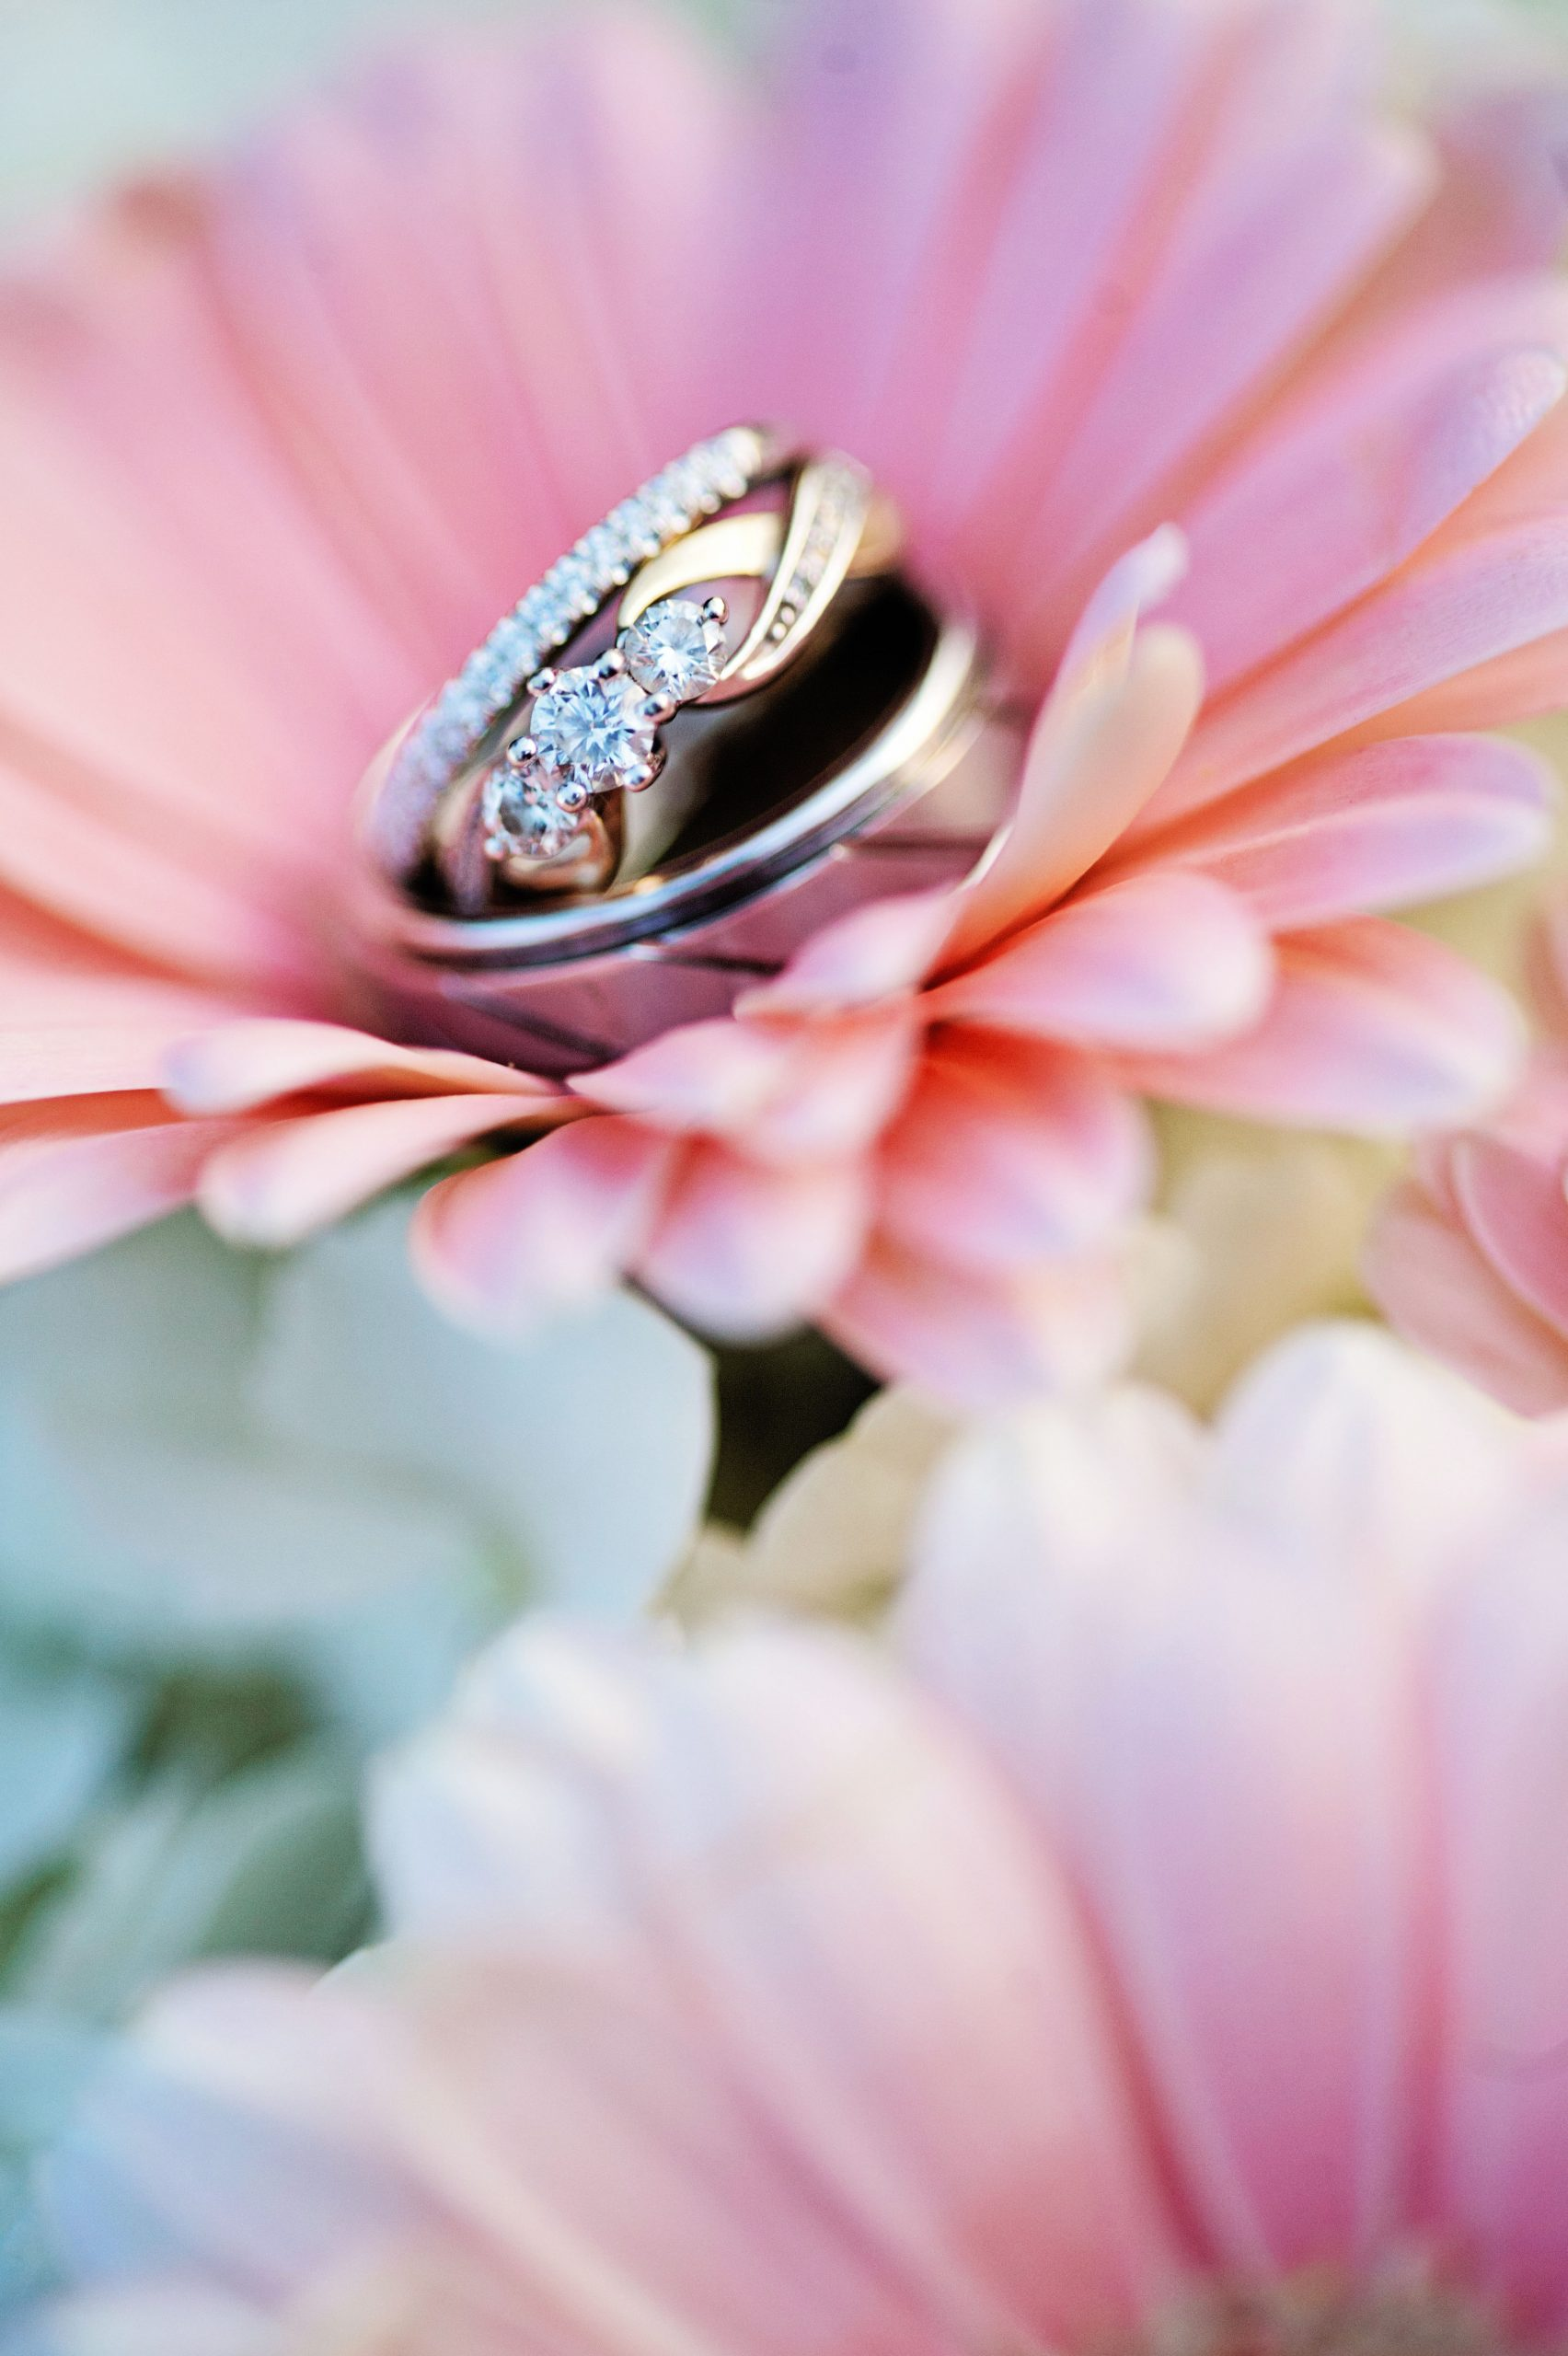 Beautifully in focus by Lovefusion Photography, the newlyweds wedding bands are cushioned by pink dusted daisies at Lakeview Farms of York, PA. Lakeview Farms of York, PA offers couples a chance to bring it down a notch and really wnjoy the company you have. Lovefusion beautifully displays that with this picture of the simple, yet elegant reception hall. Featured on Dream Weddings.